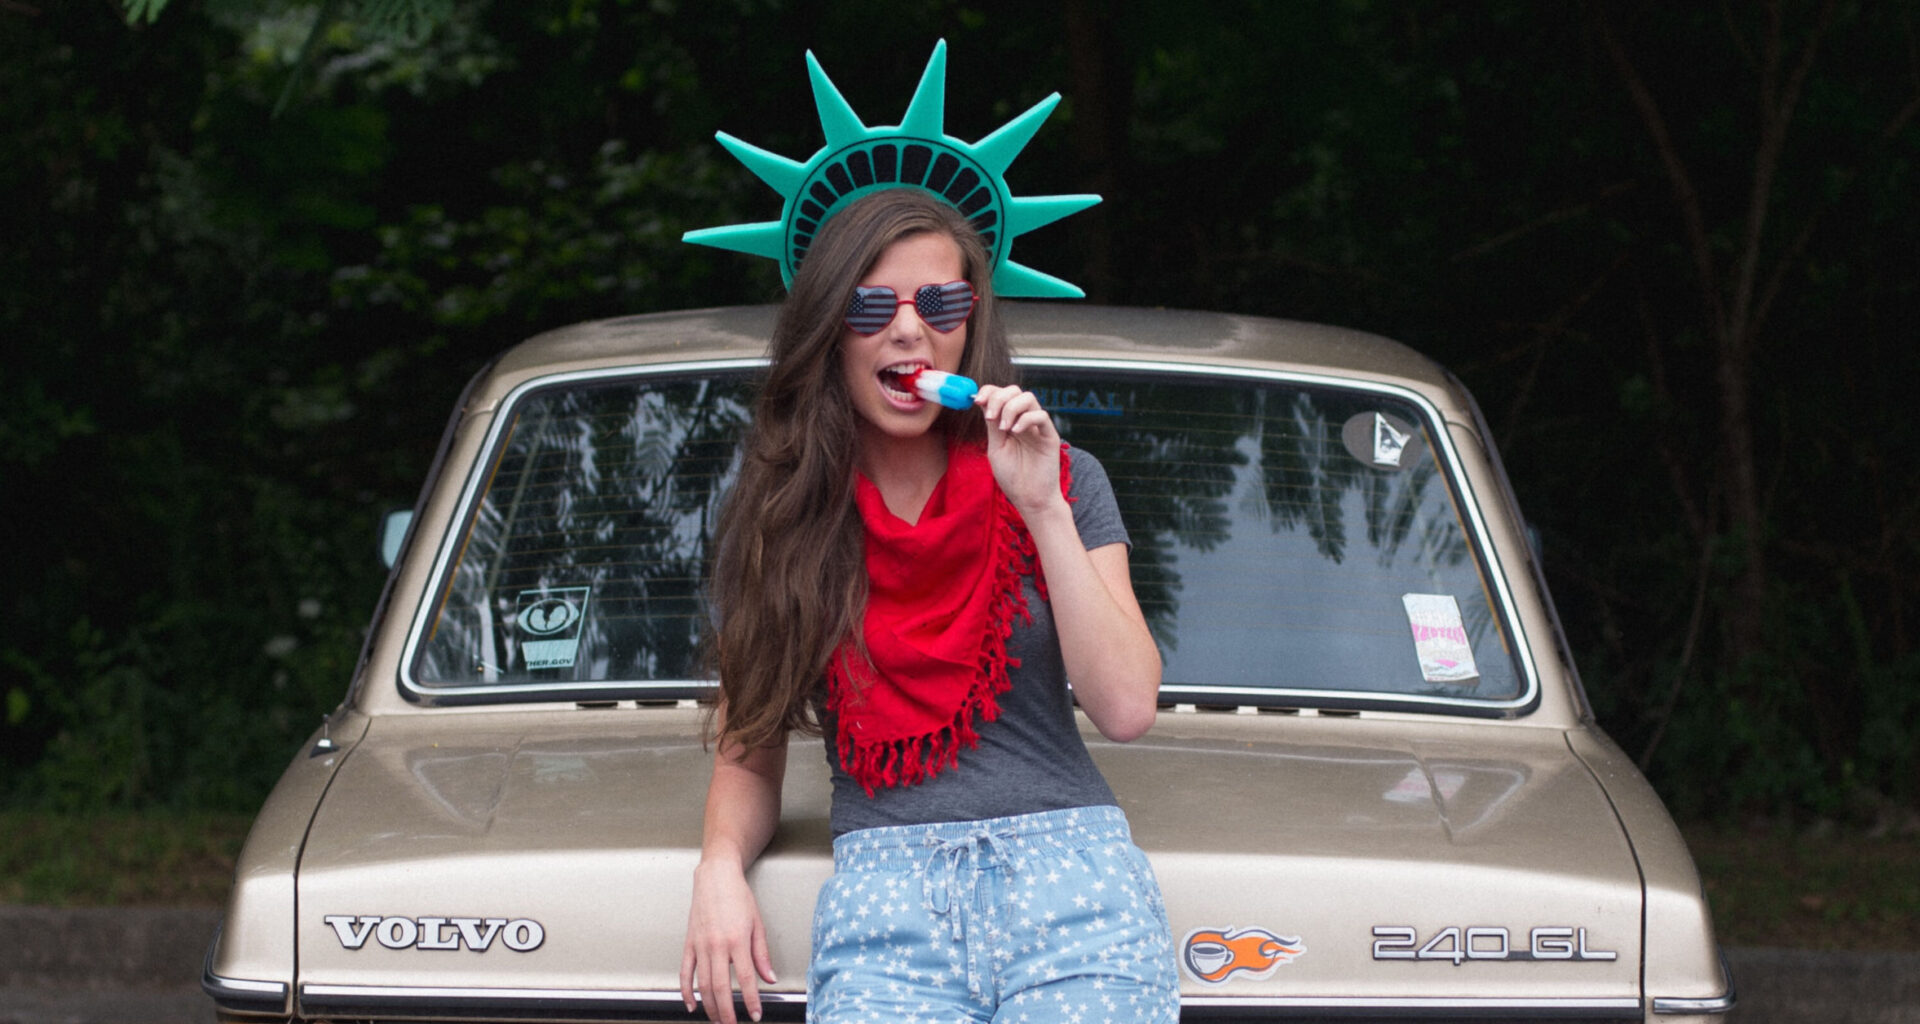 patriotic college student eating a popsicle